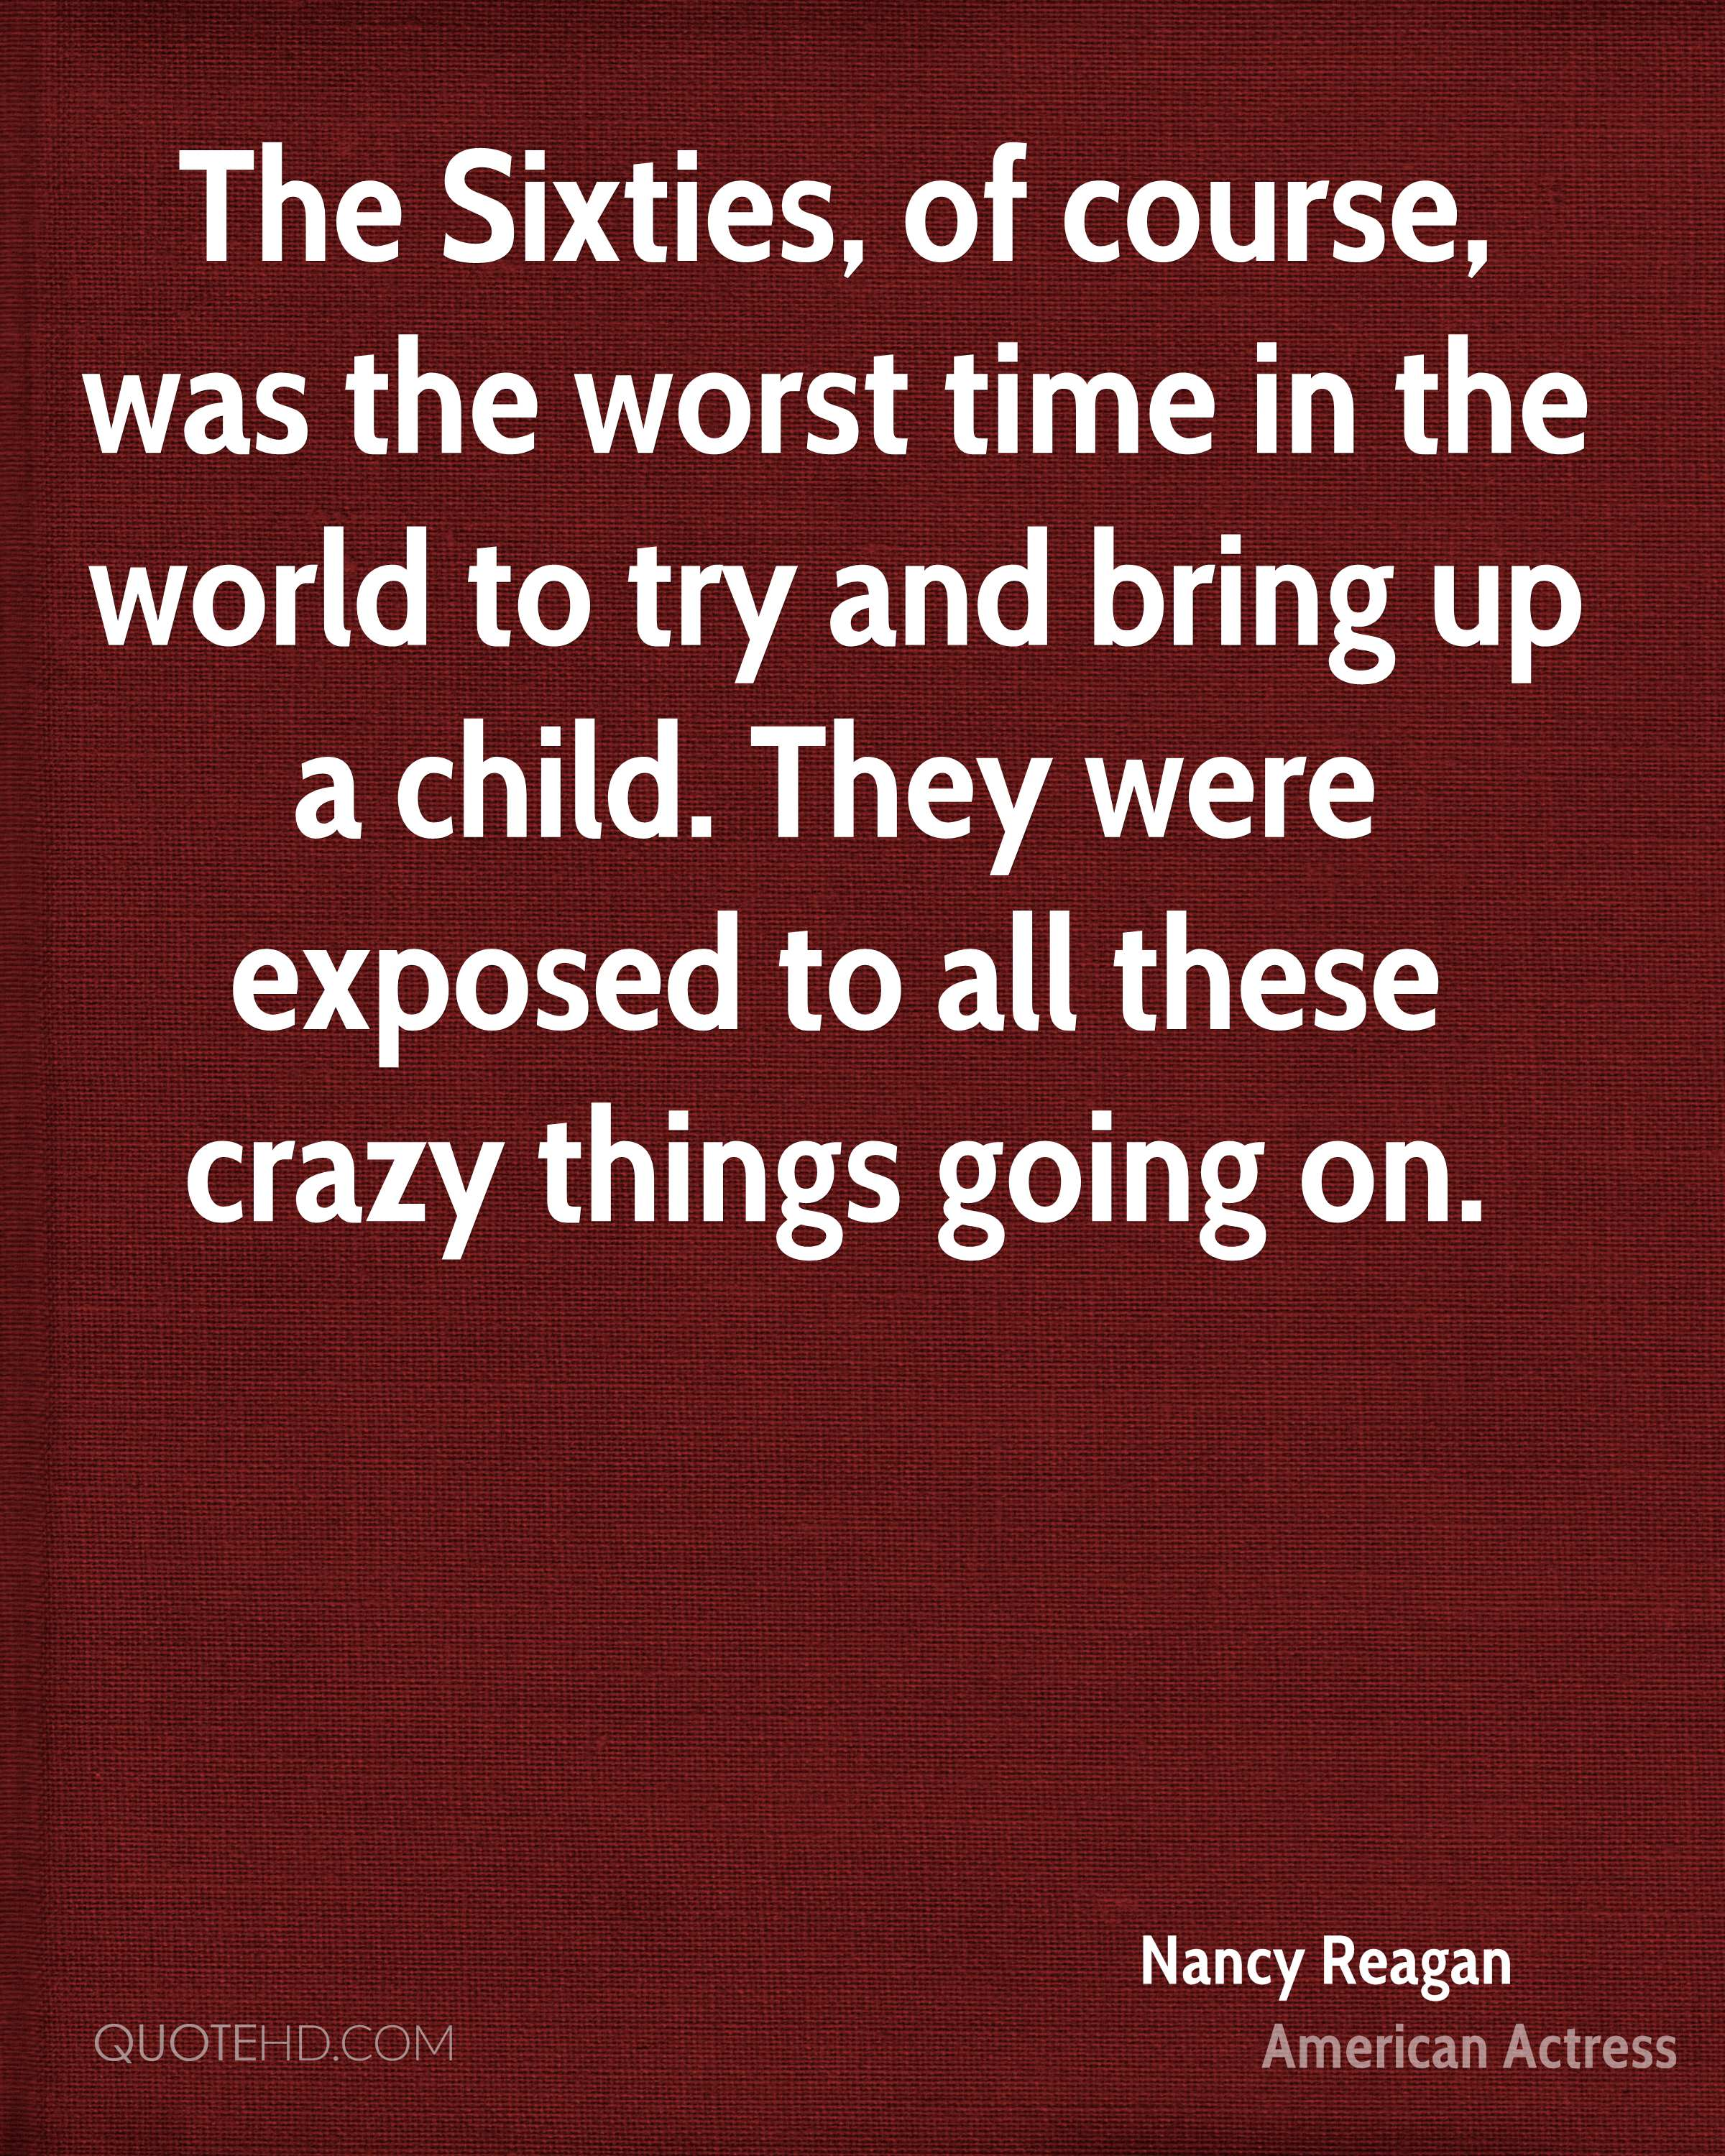 The Sixties, of course, was the worst time in the world to try and bring up a child. They were exposed to all these crazy things going on.